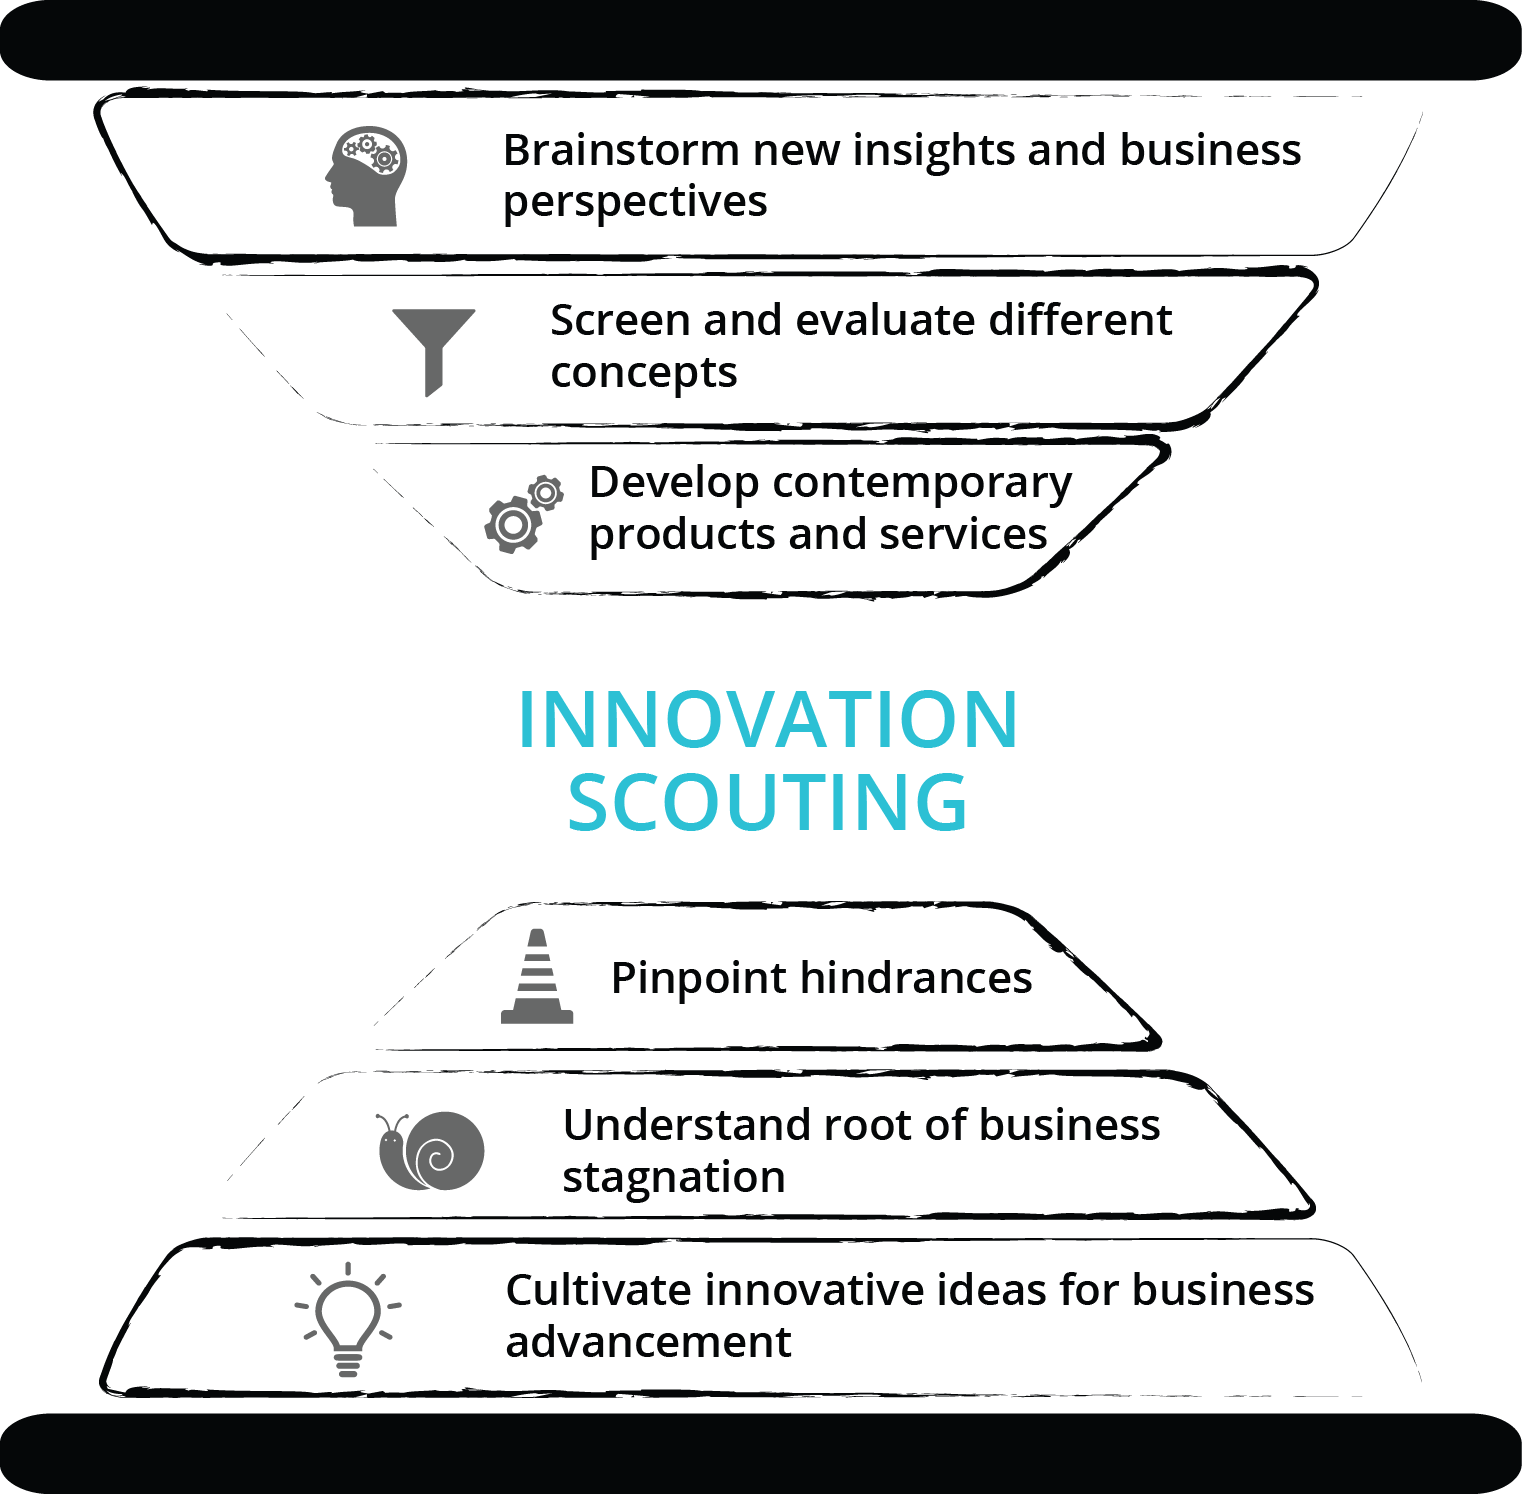 Innovation Scouting Approach